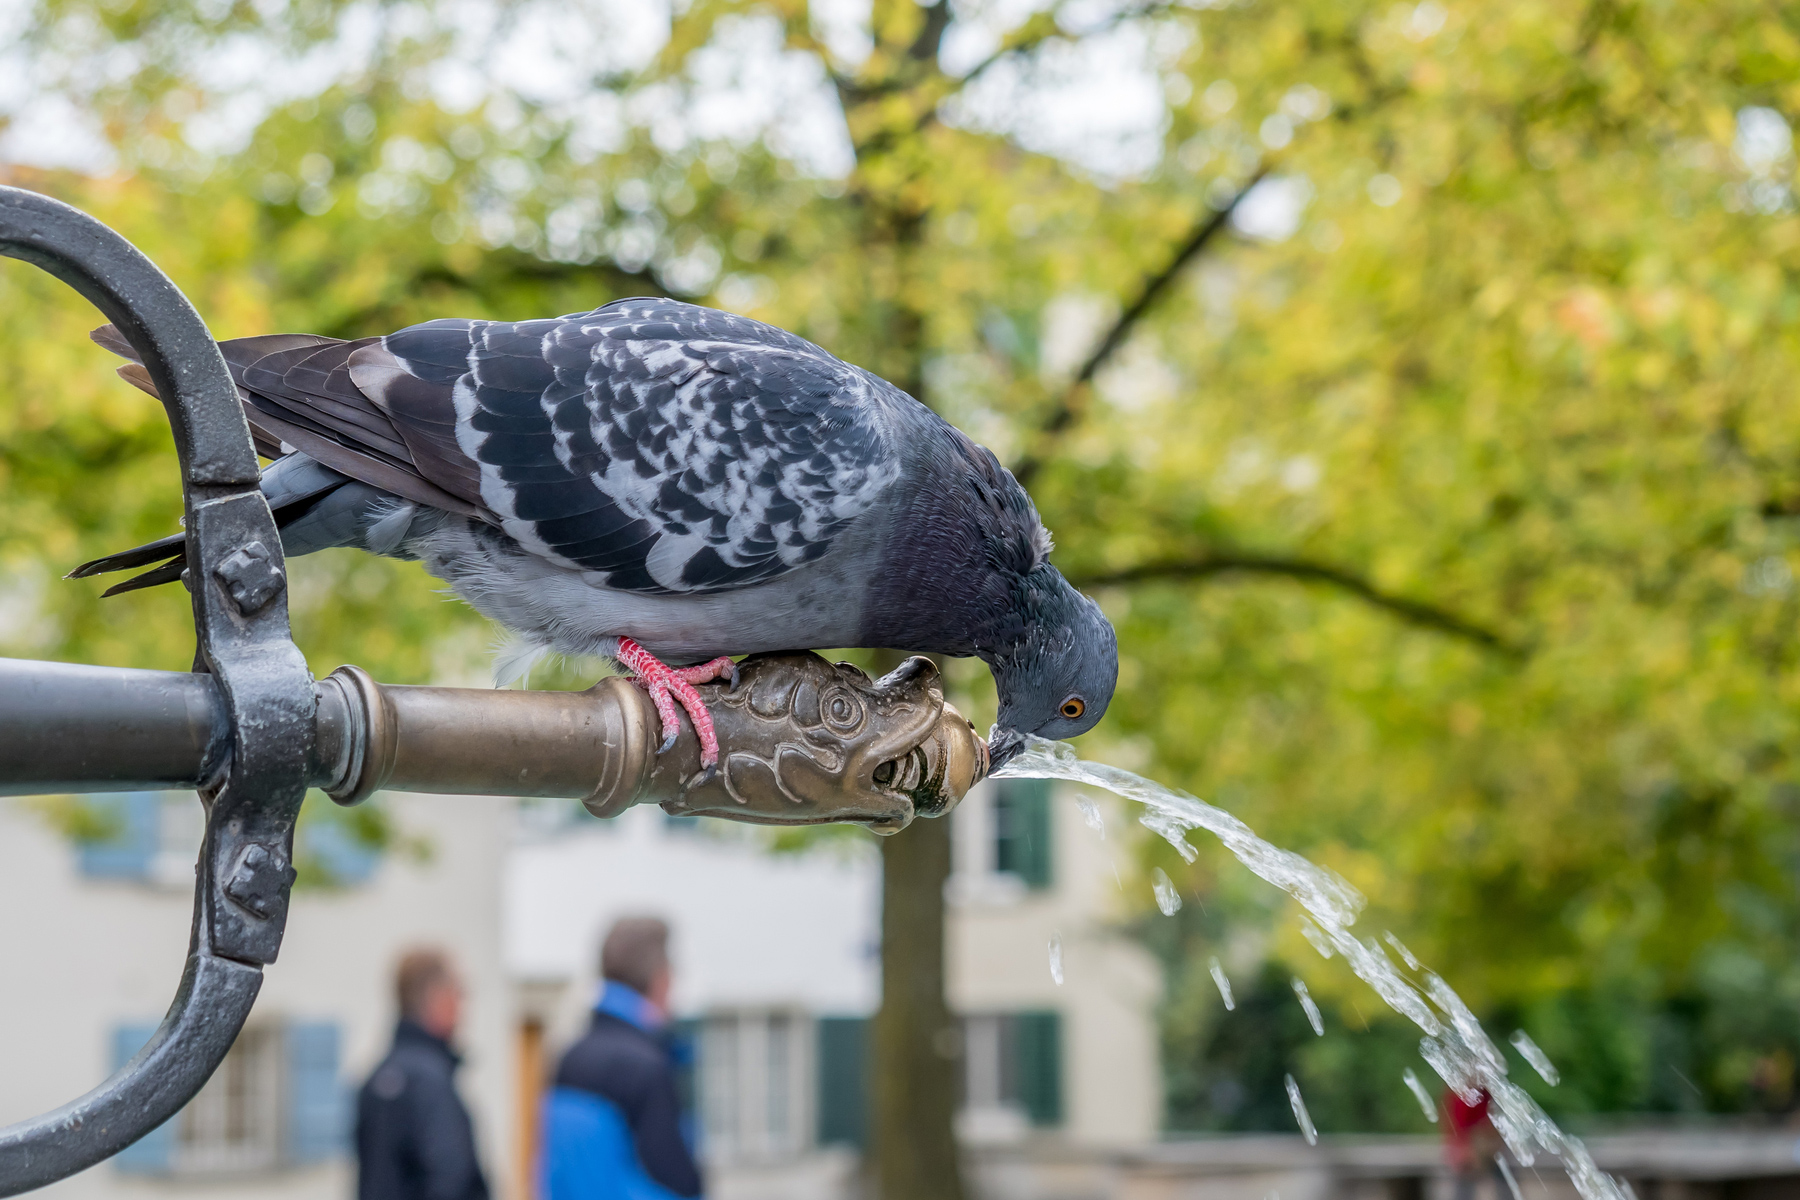 Pigeon drinking from a water fountain